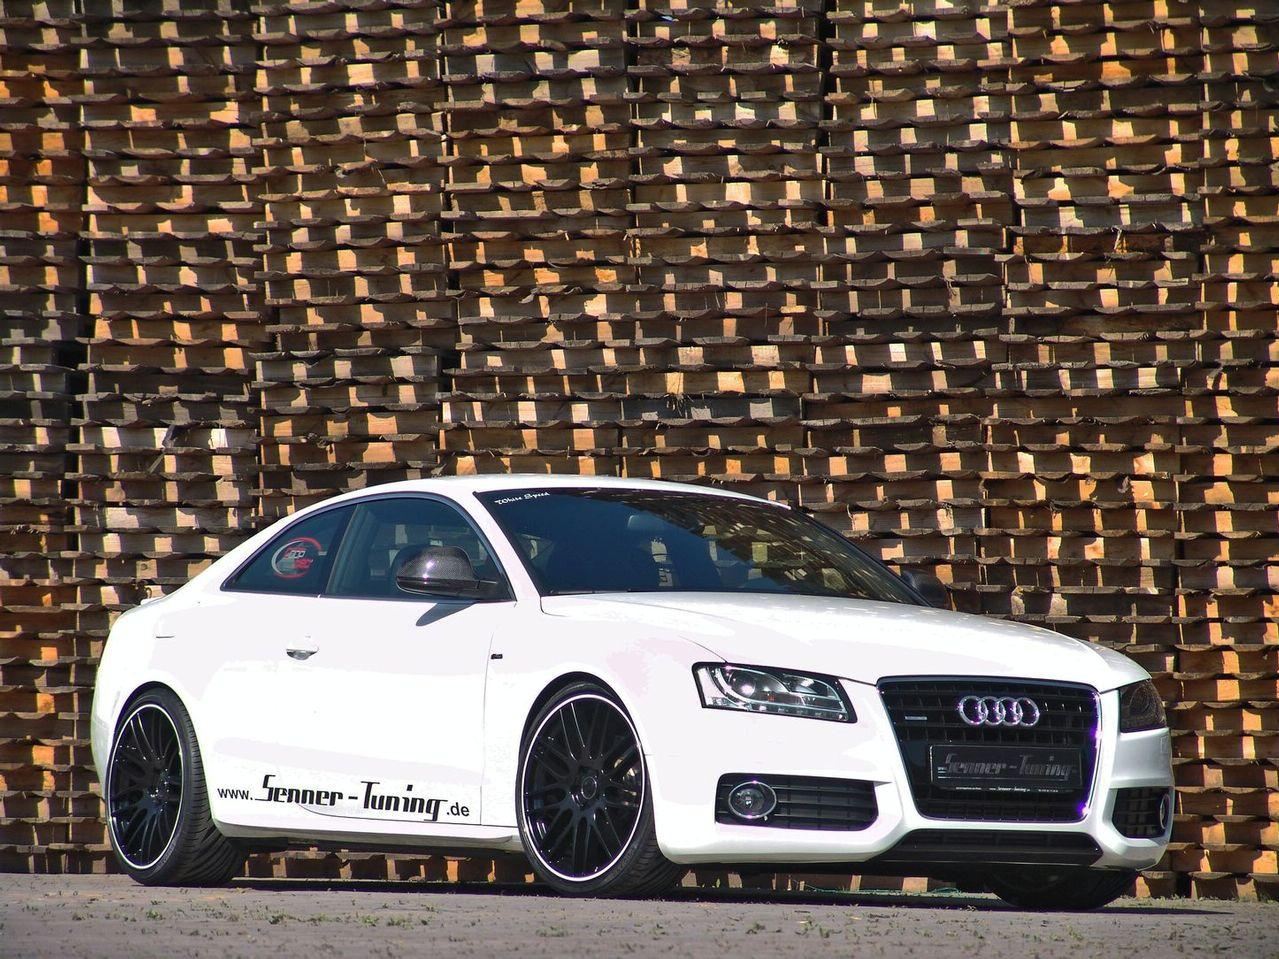 audi a5 3 0 tdi black and white by senner tuning car news. Black Bedroom Furniture Sets. Home Design Ideas